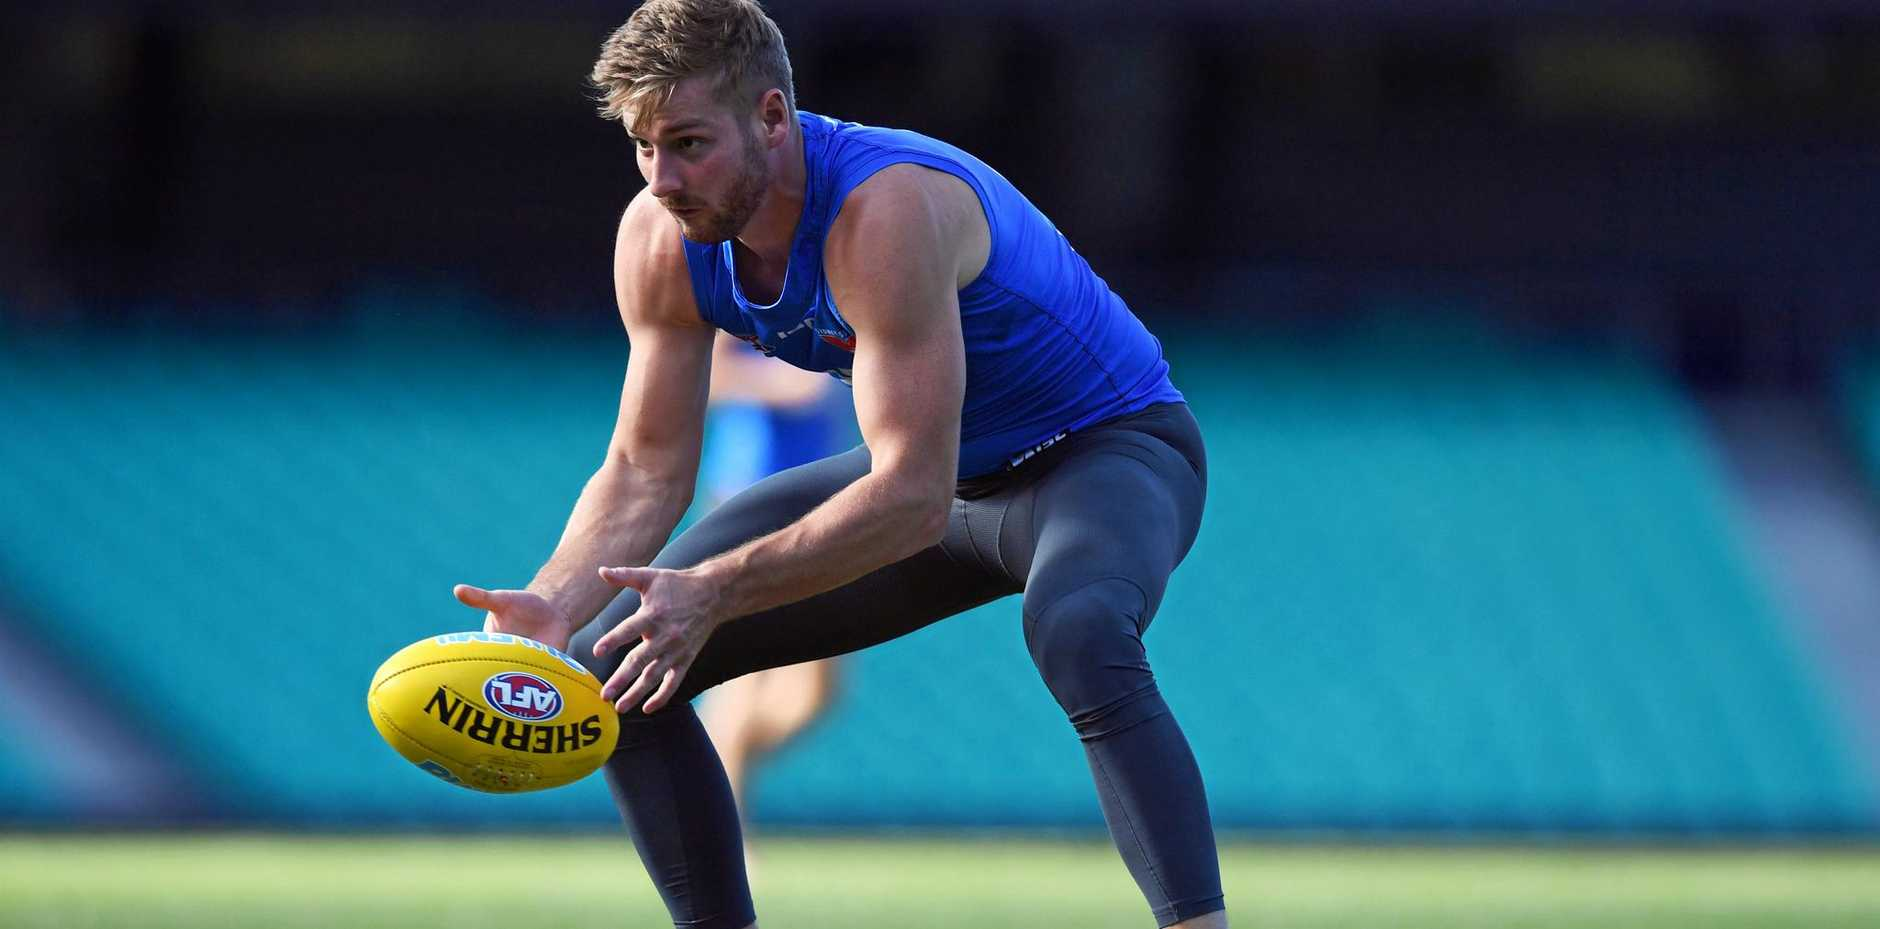 BACK AGAIN: Sydney Swans player Alex Johnson ran out for the team's NEAFL Canberra team at the weekend his first game in 1736 days after a fifth knee reconstruction.